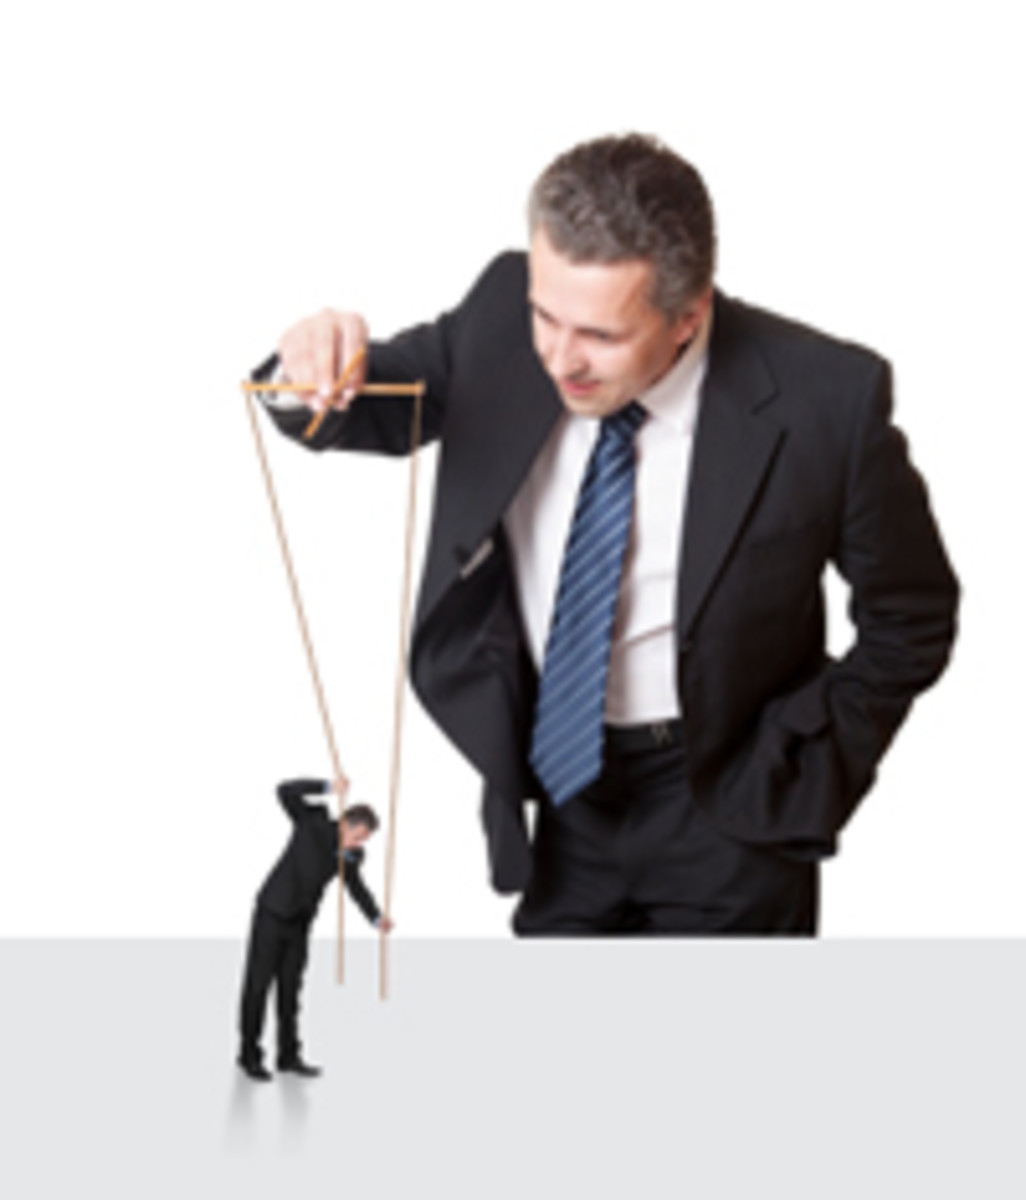 The Controlling personality can quite often make you feel like a puppet on strings and they are your puppeteer.